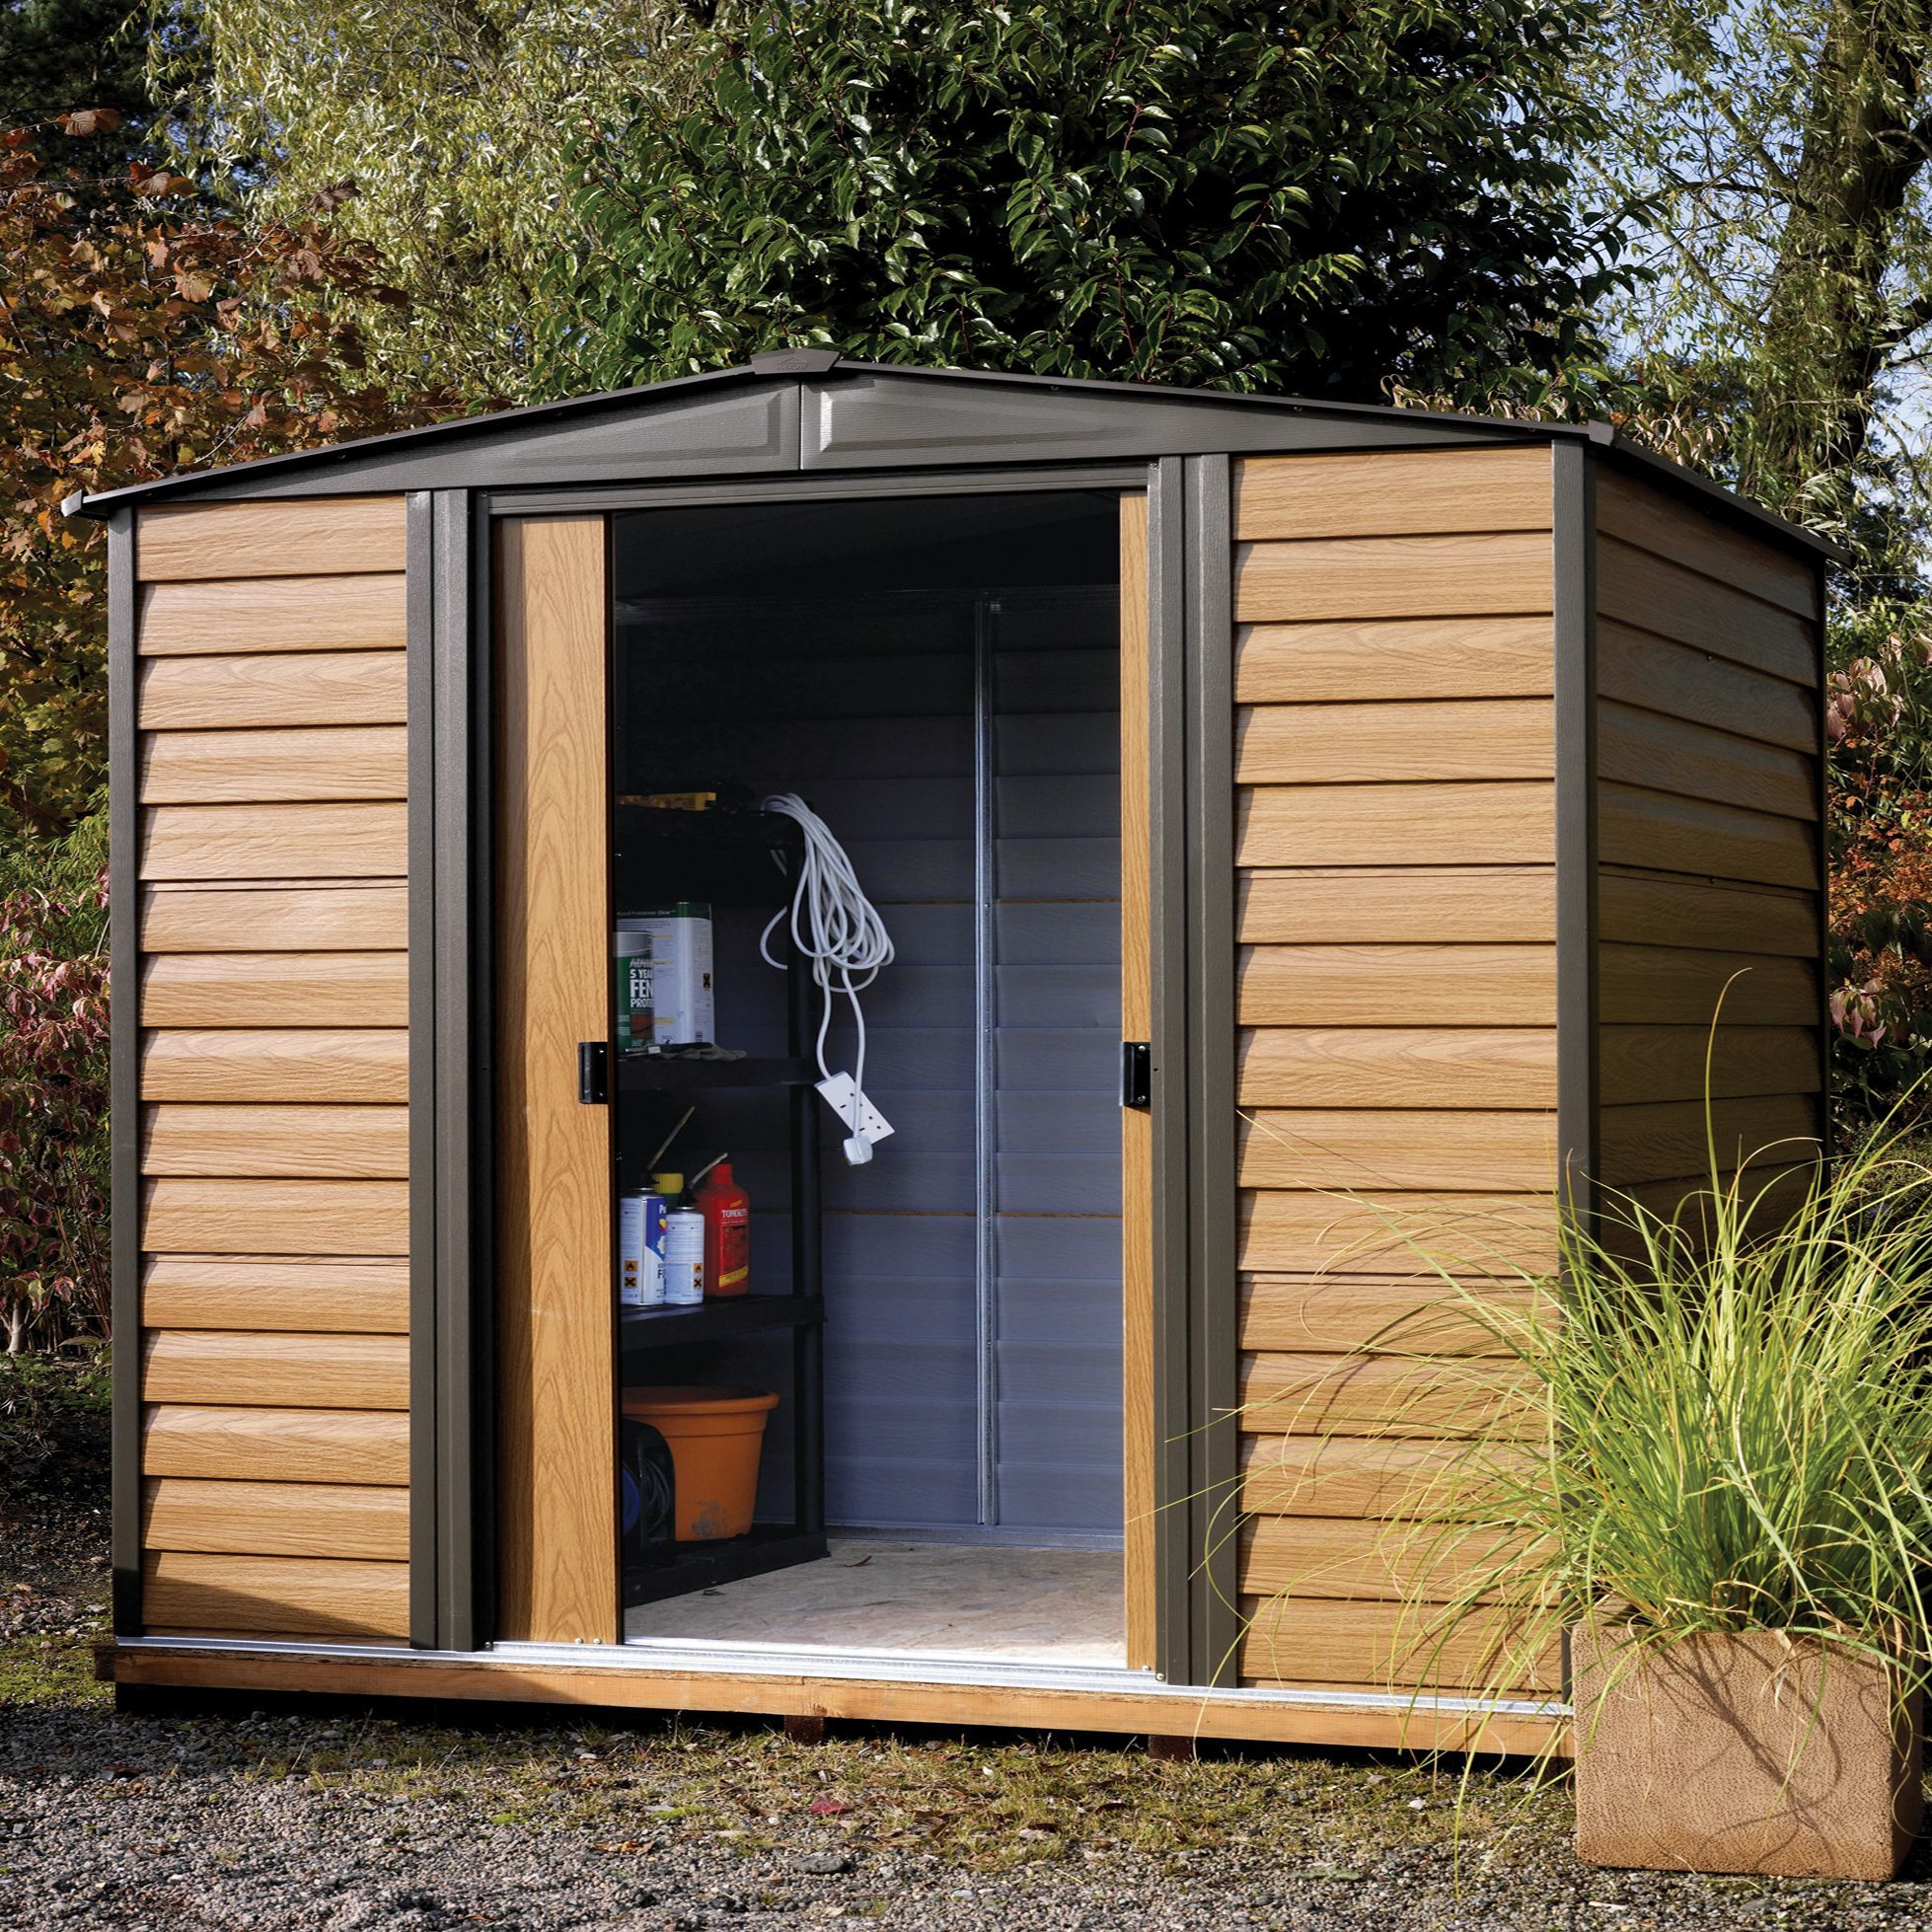 8x6 woodvale apex metal shed departments diy at b q for Garden shed homebase